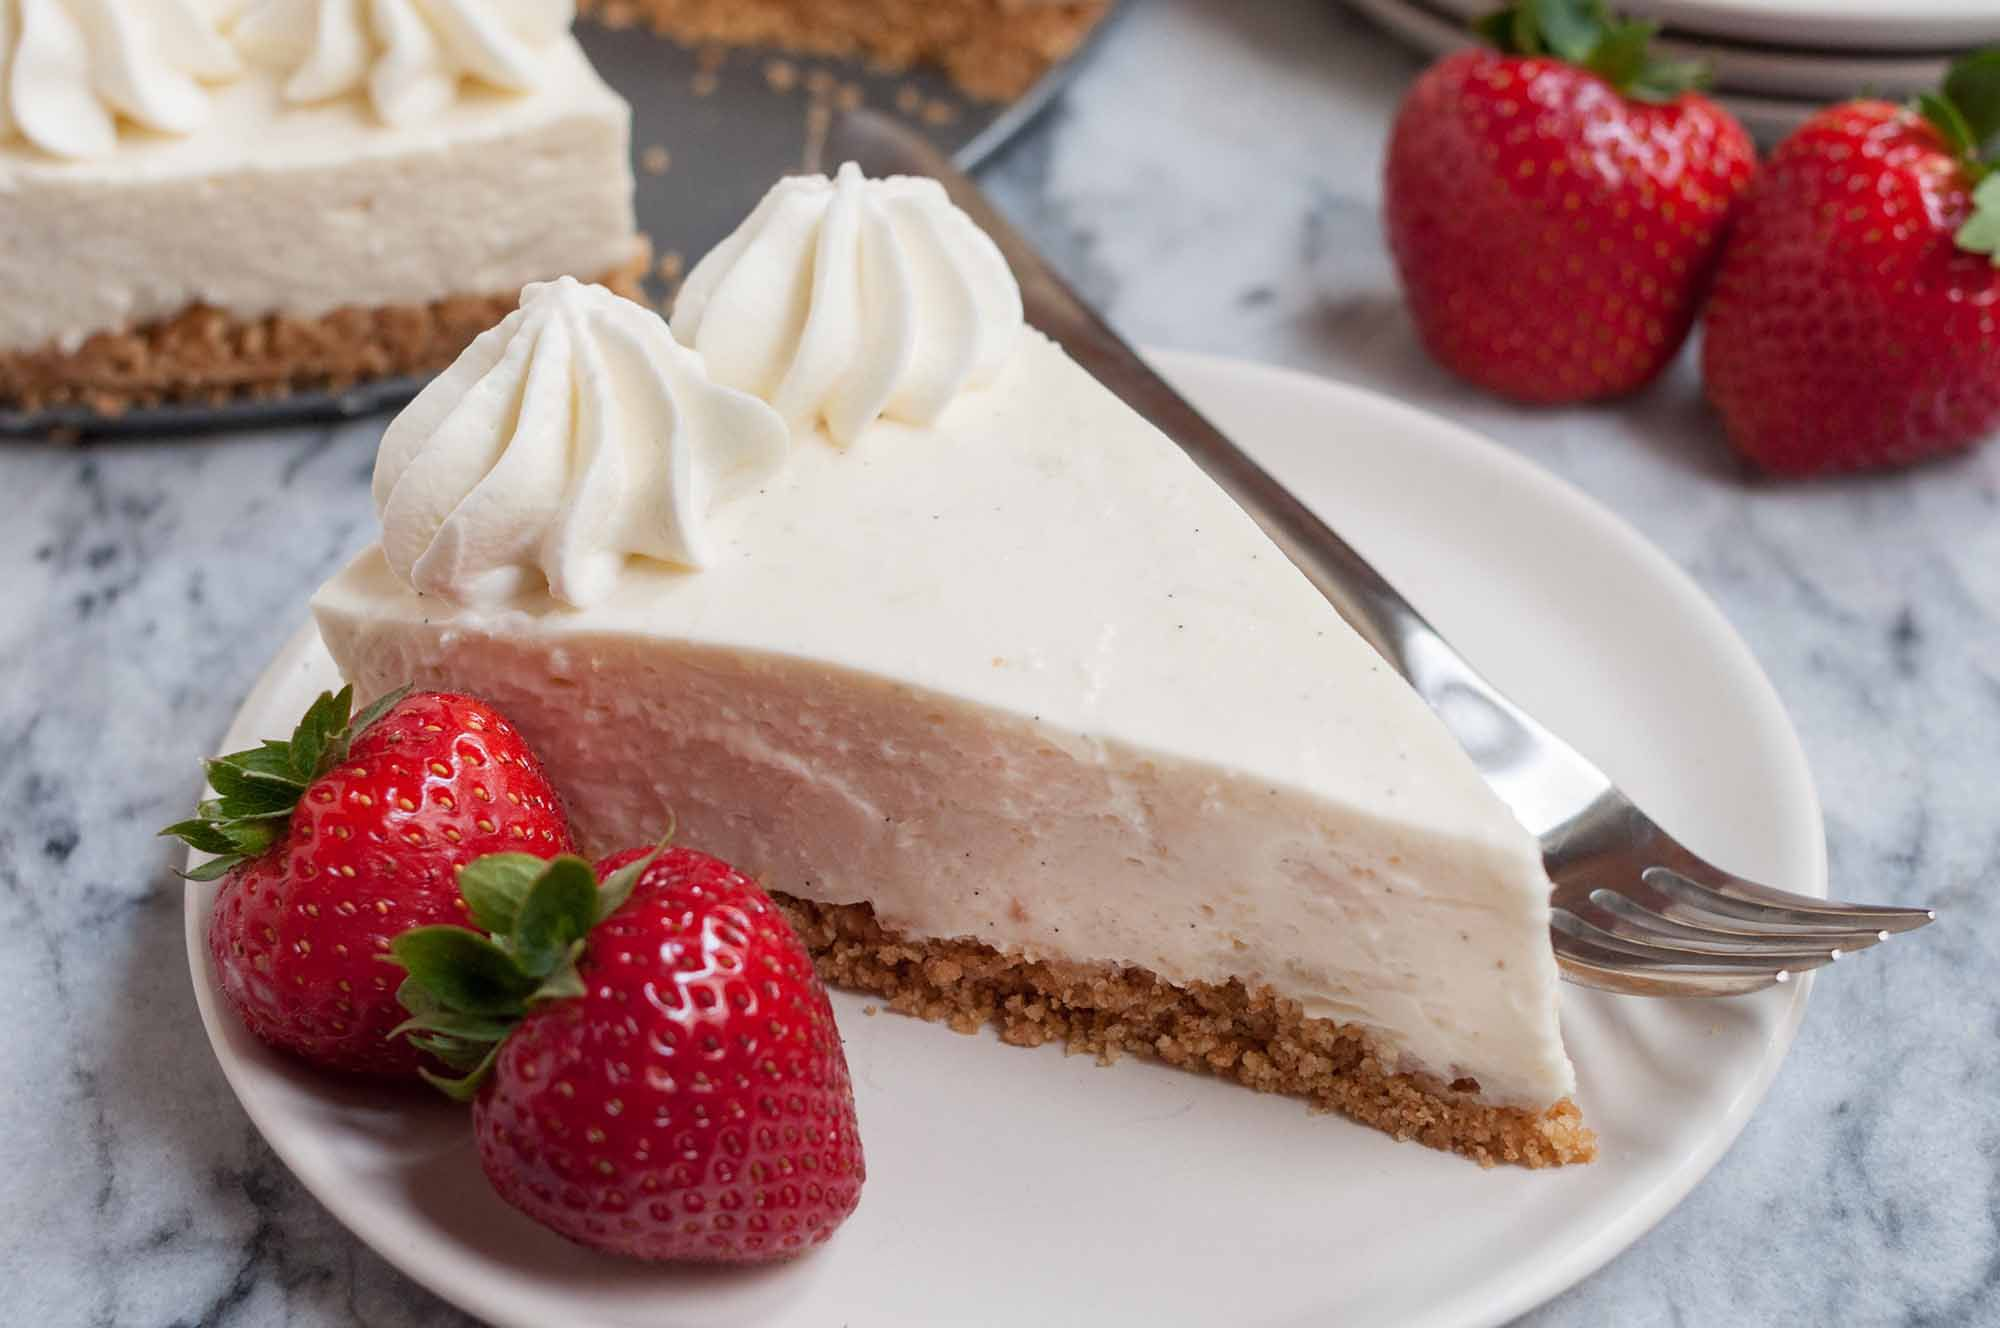 No Bake Cheesecake made with easy no bake cheesecake filling and graham cracker crust